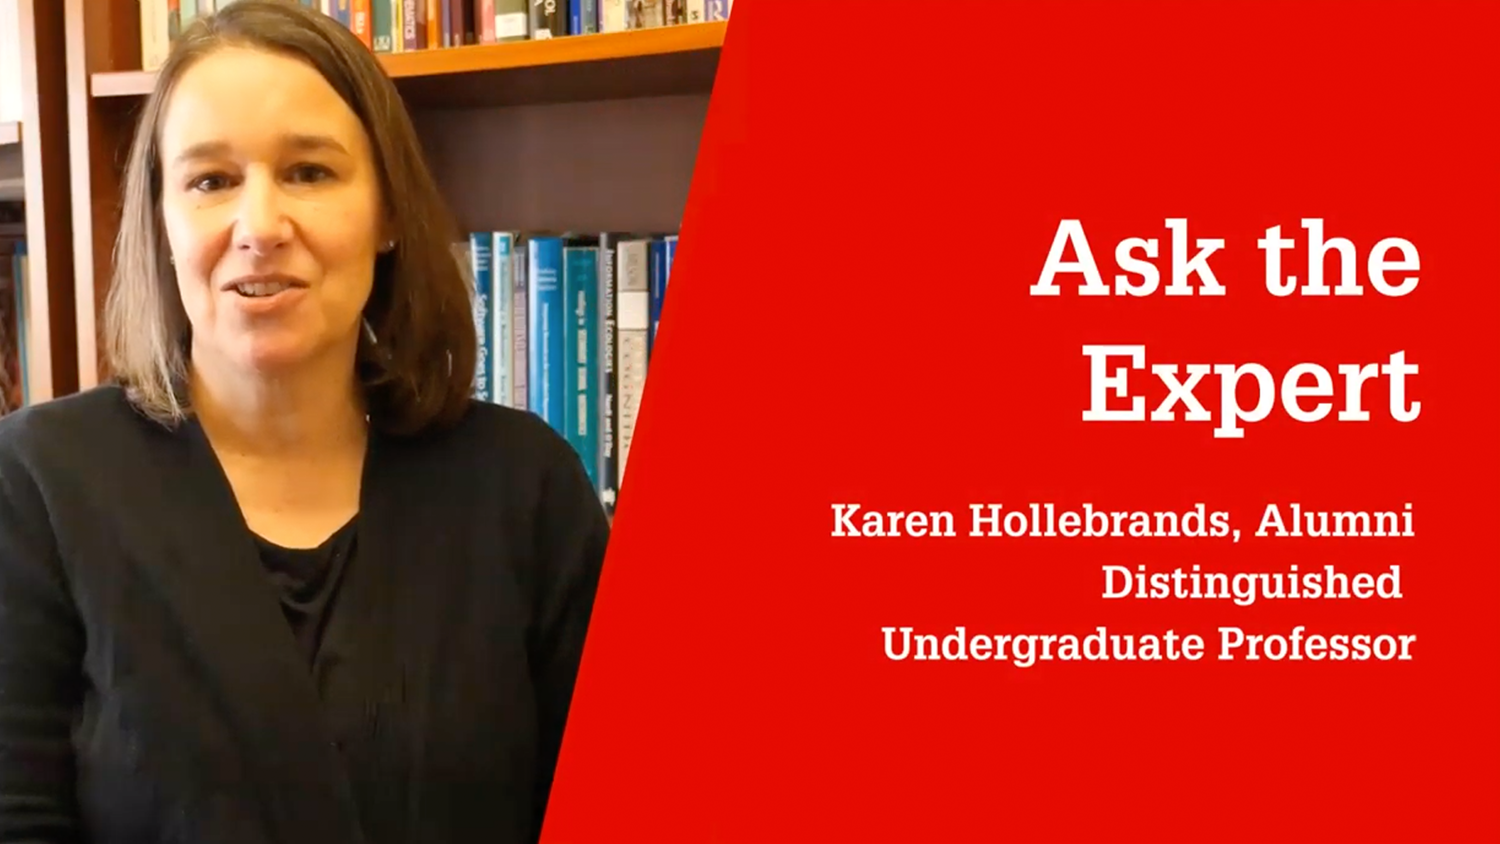 Karen Hollebrands talks about how teachers can use technology in the classroom